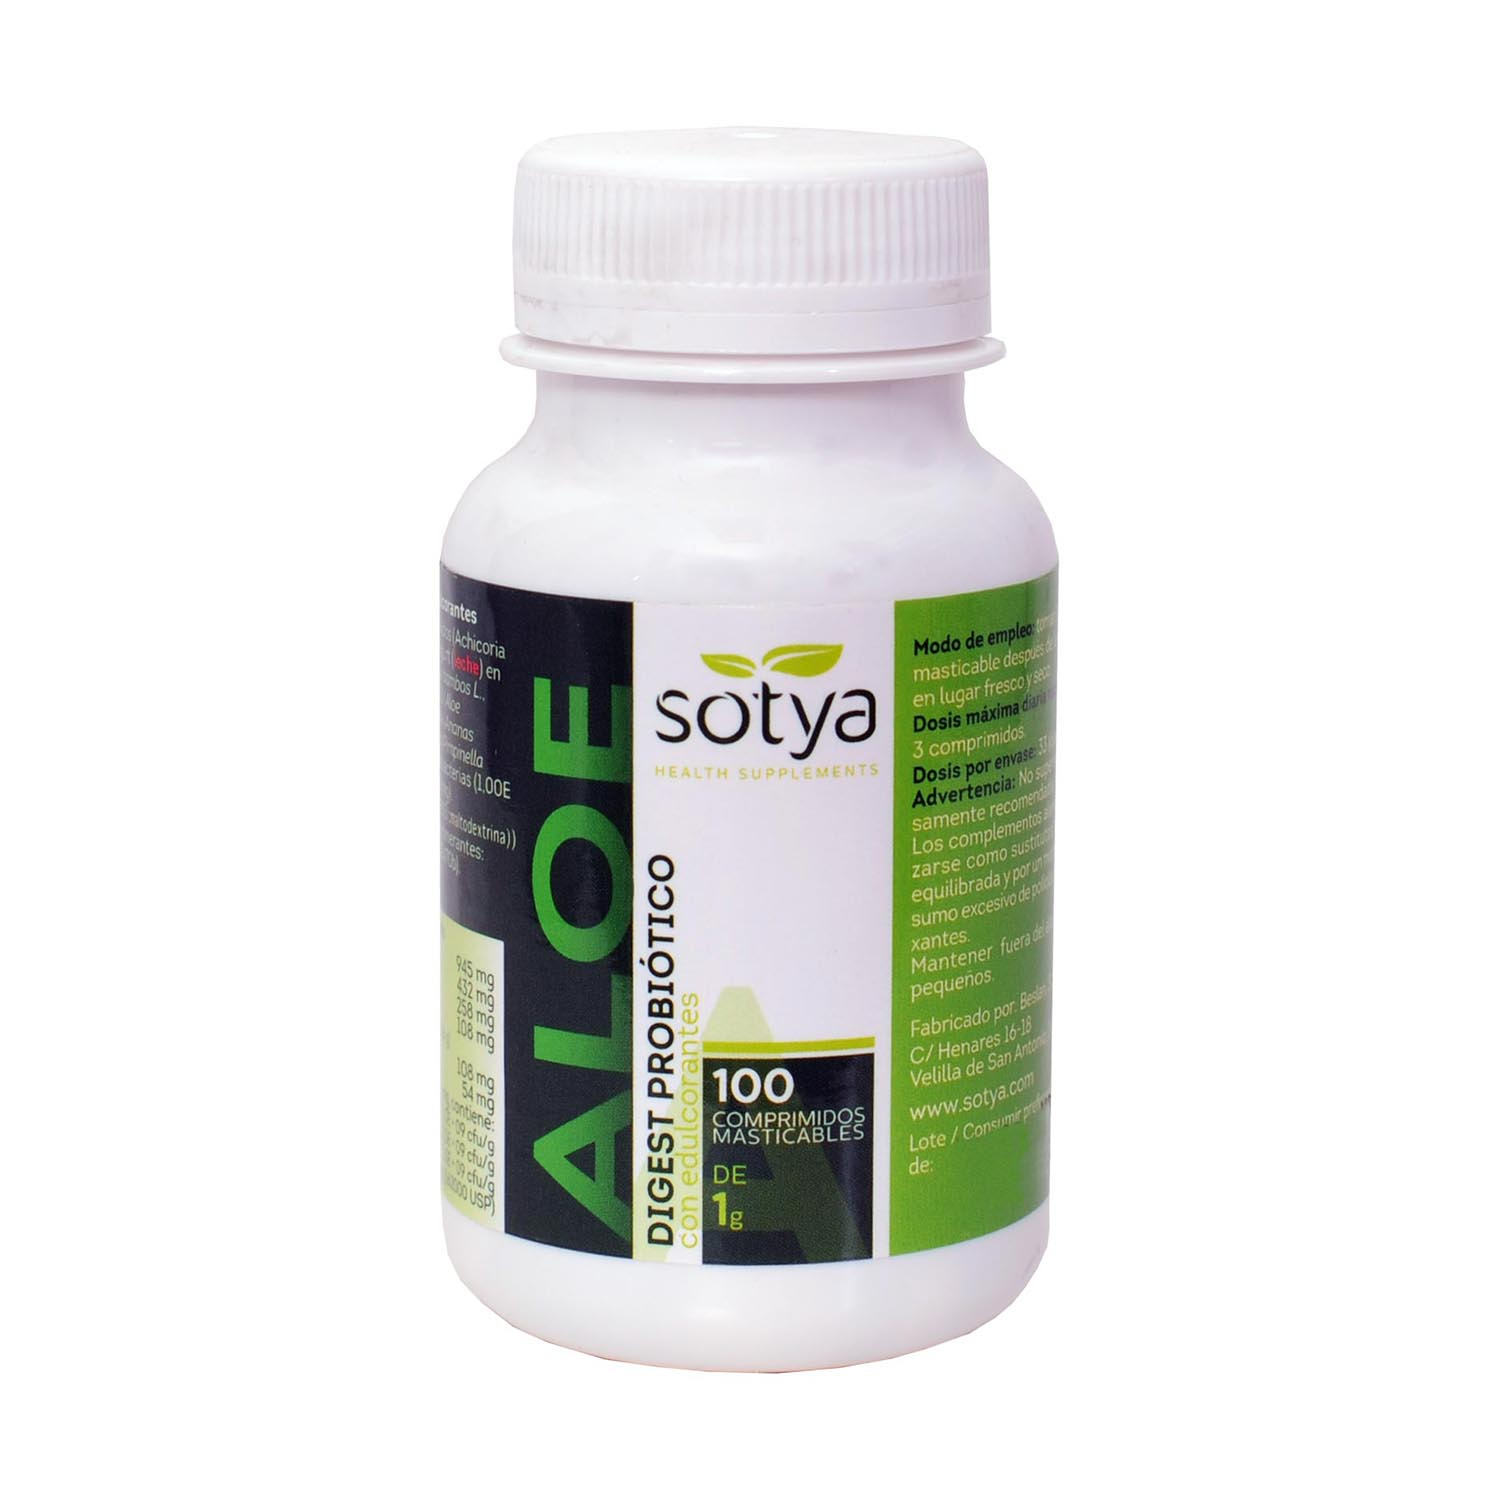 Aloe Digest Probioticor Masticable - Sotya - 100 comprimidos masticables